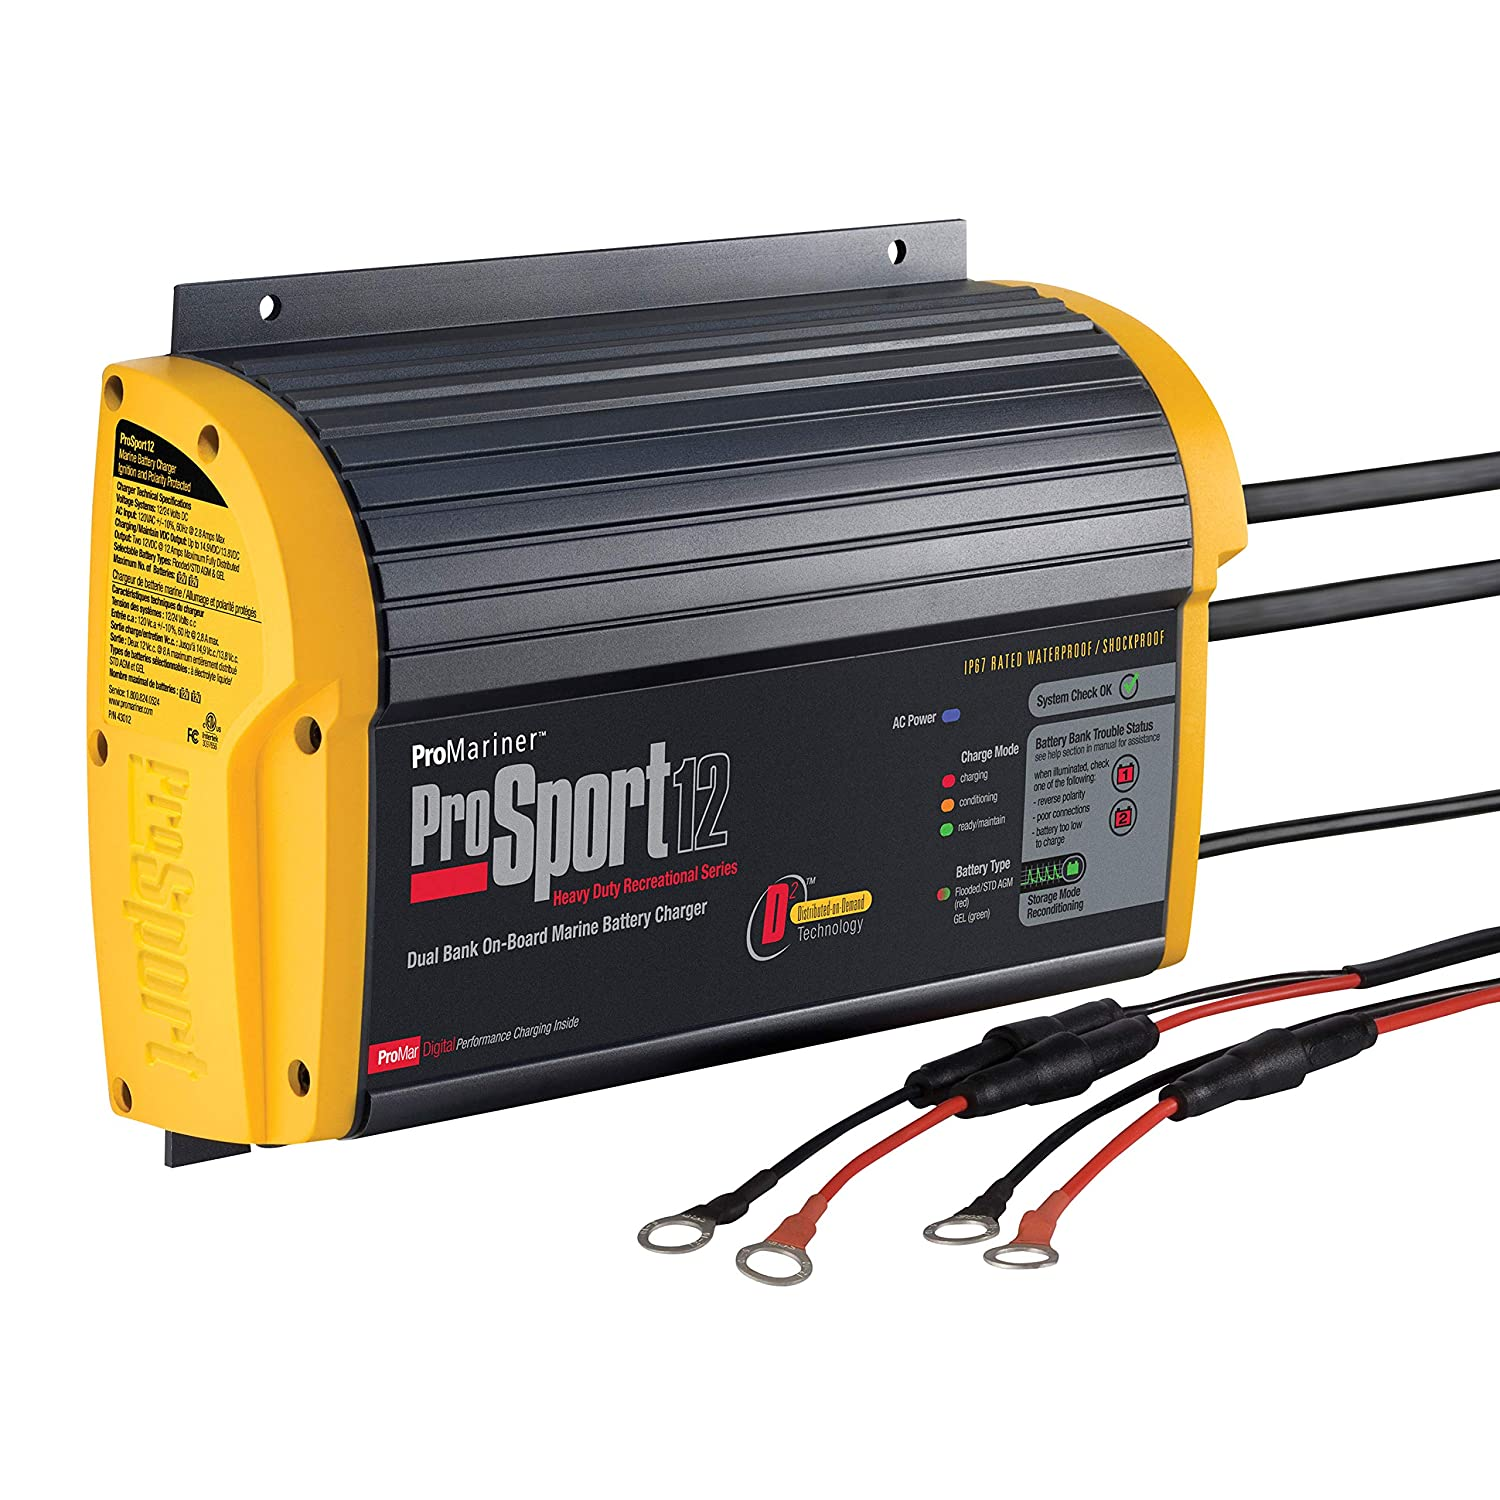 Promariner 43012 Prosport 12 Amp 24 Volt 2 Bank Electrical Wiring Registration Board Generation 3 Battery Charger Fishing Nets Sports Outdoors